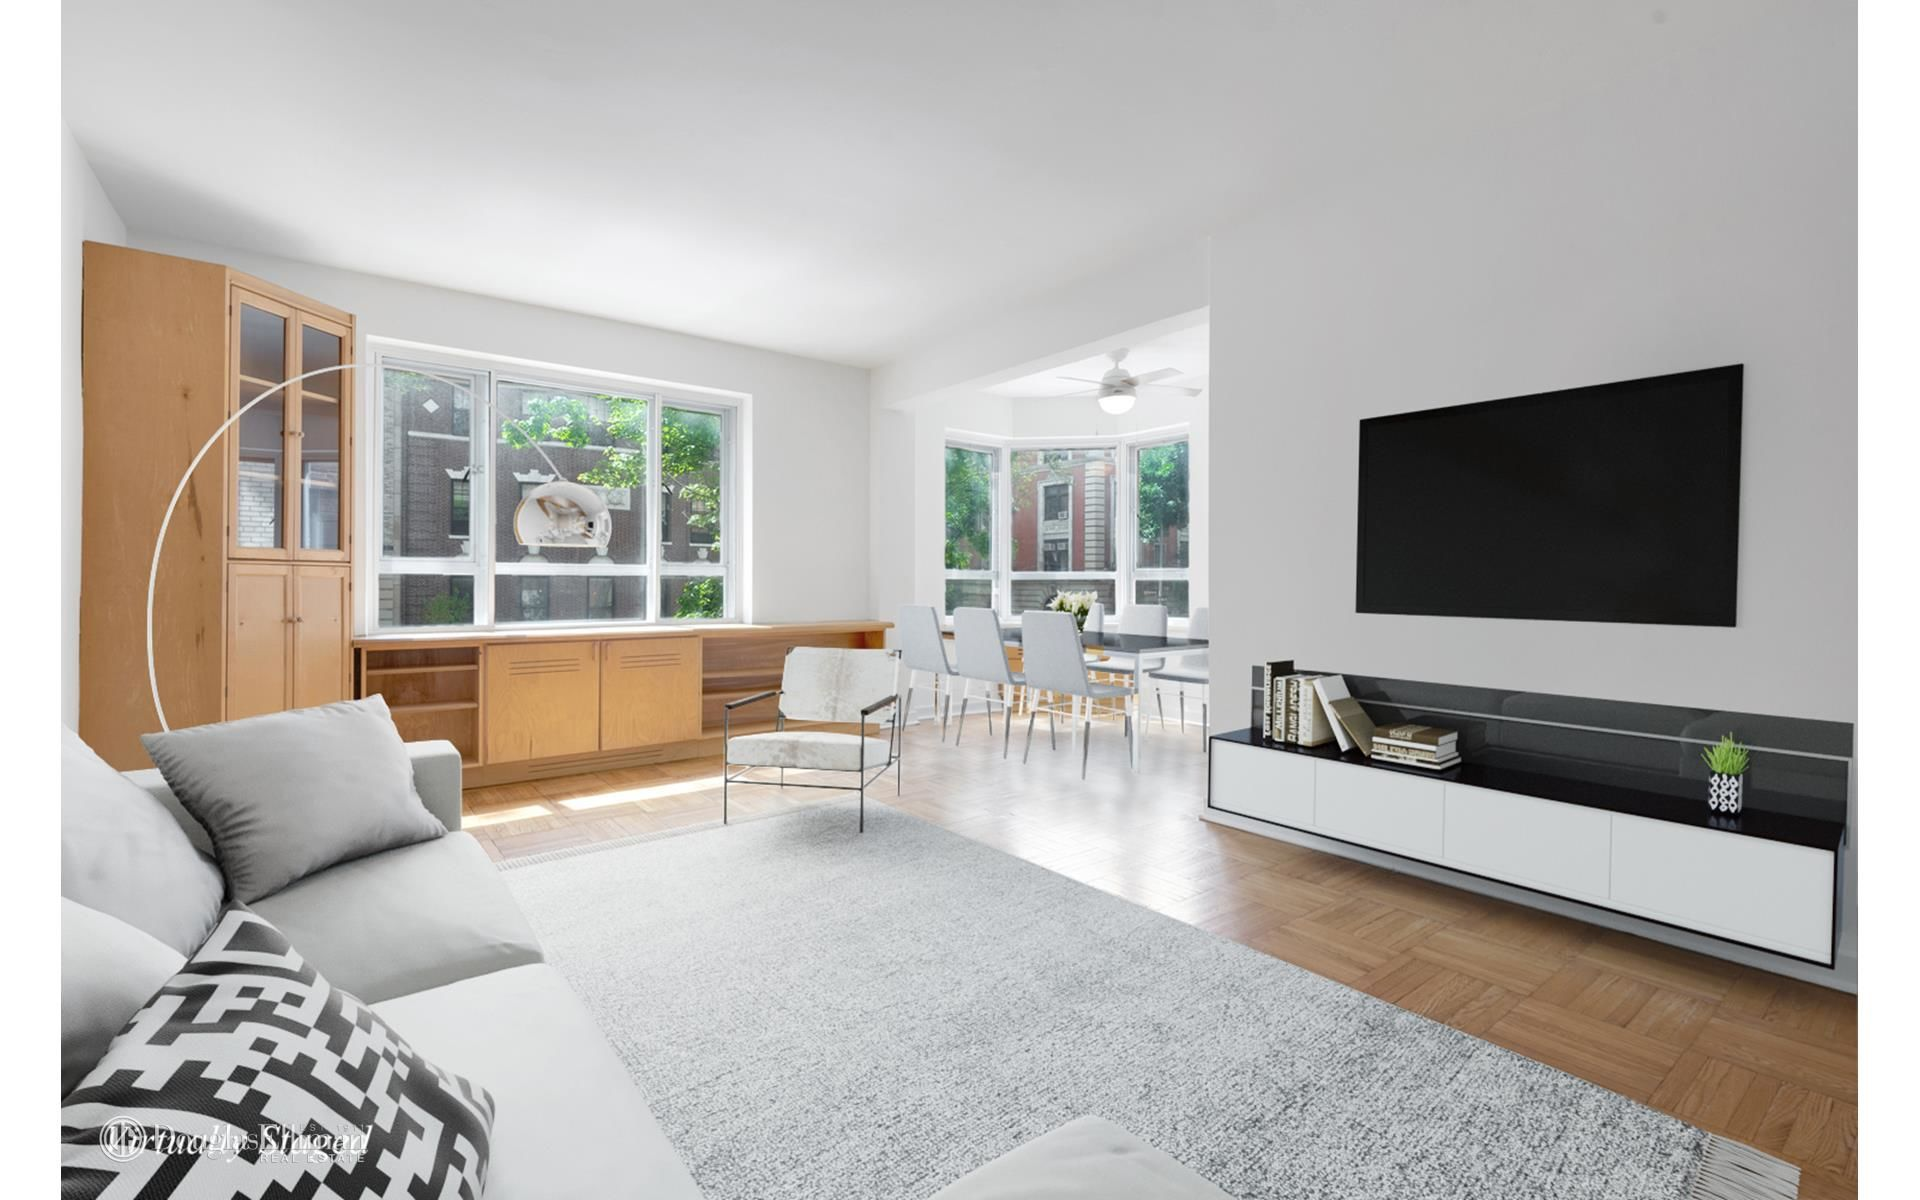 130 8th Ave, APT 2A Photo 0 - ELLIMAN-3787631